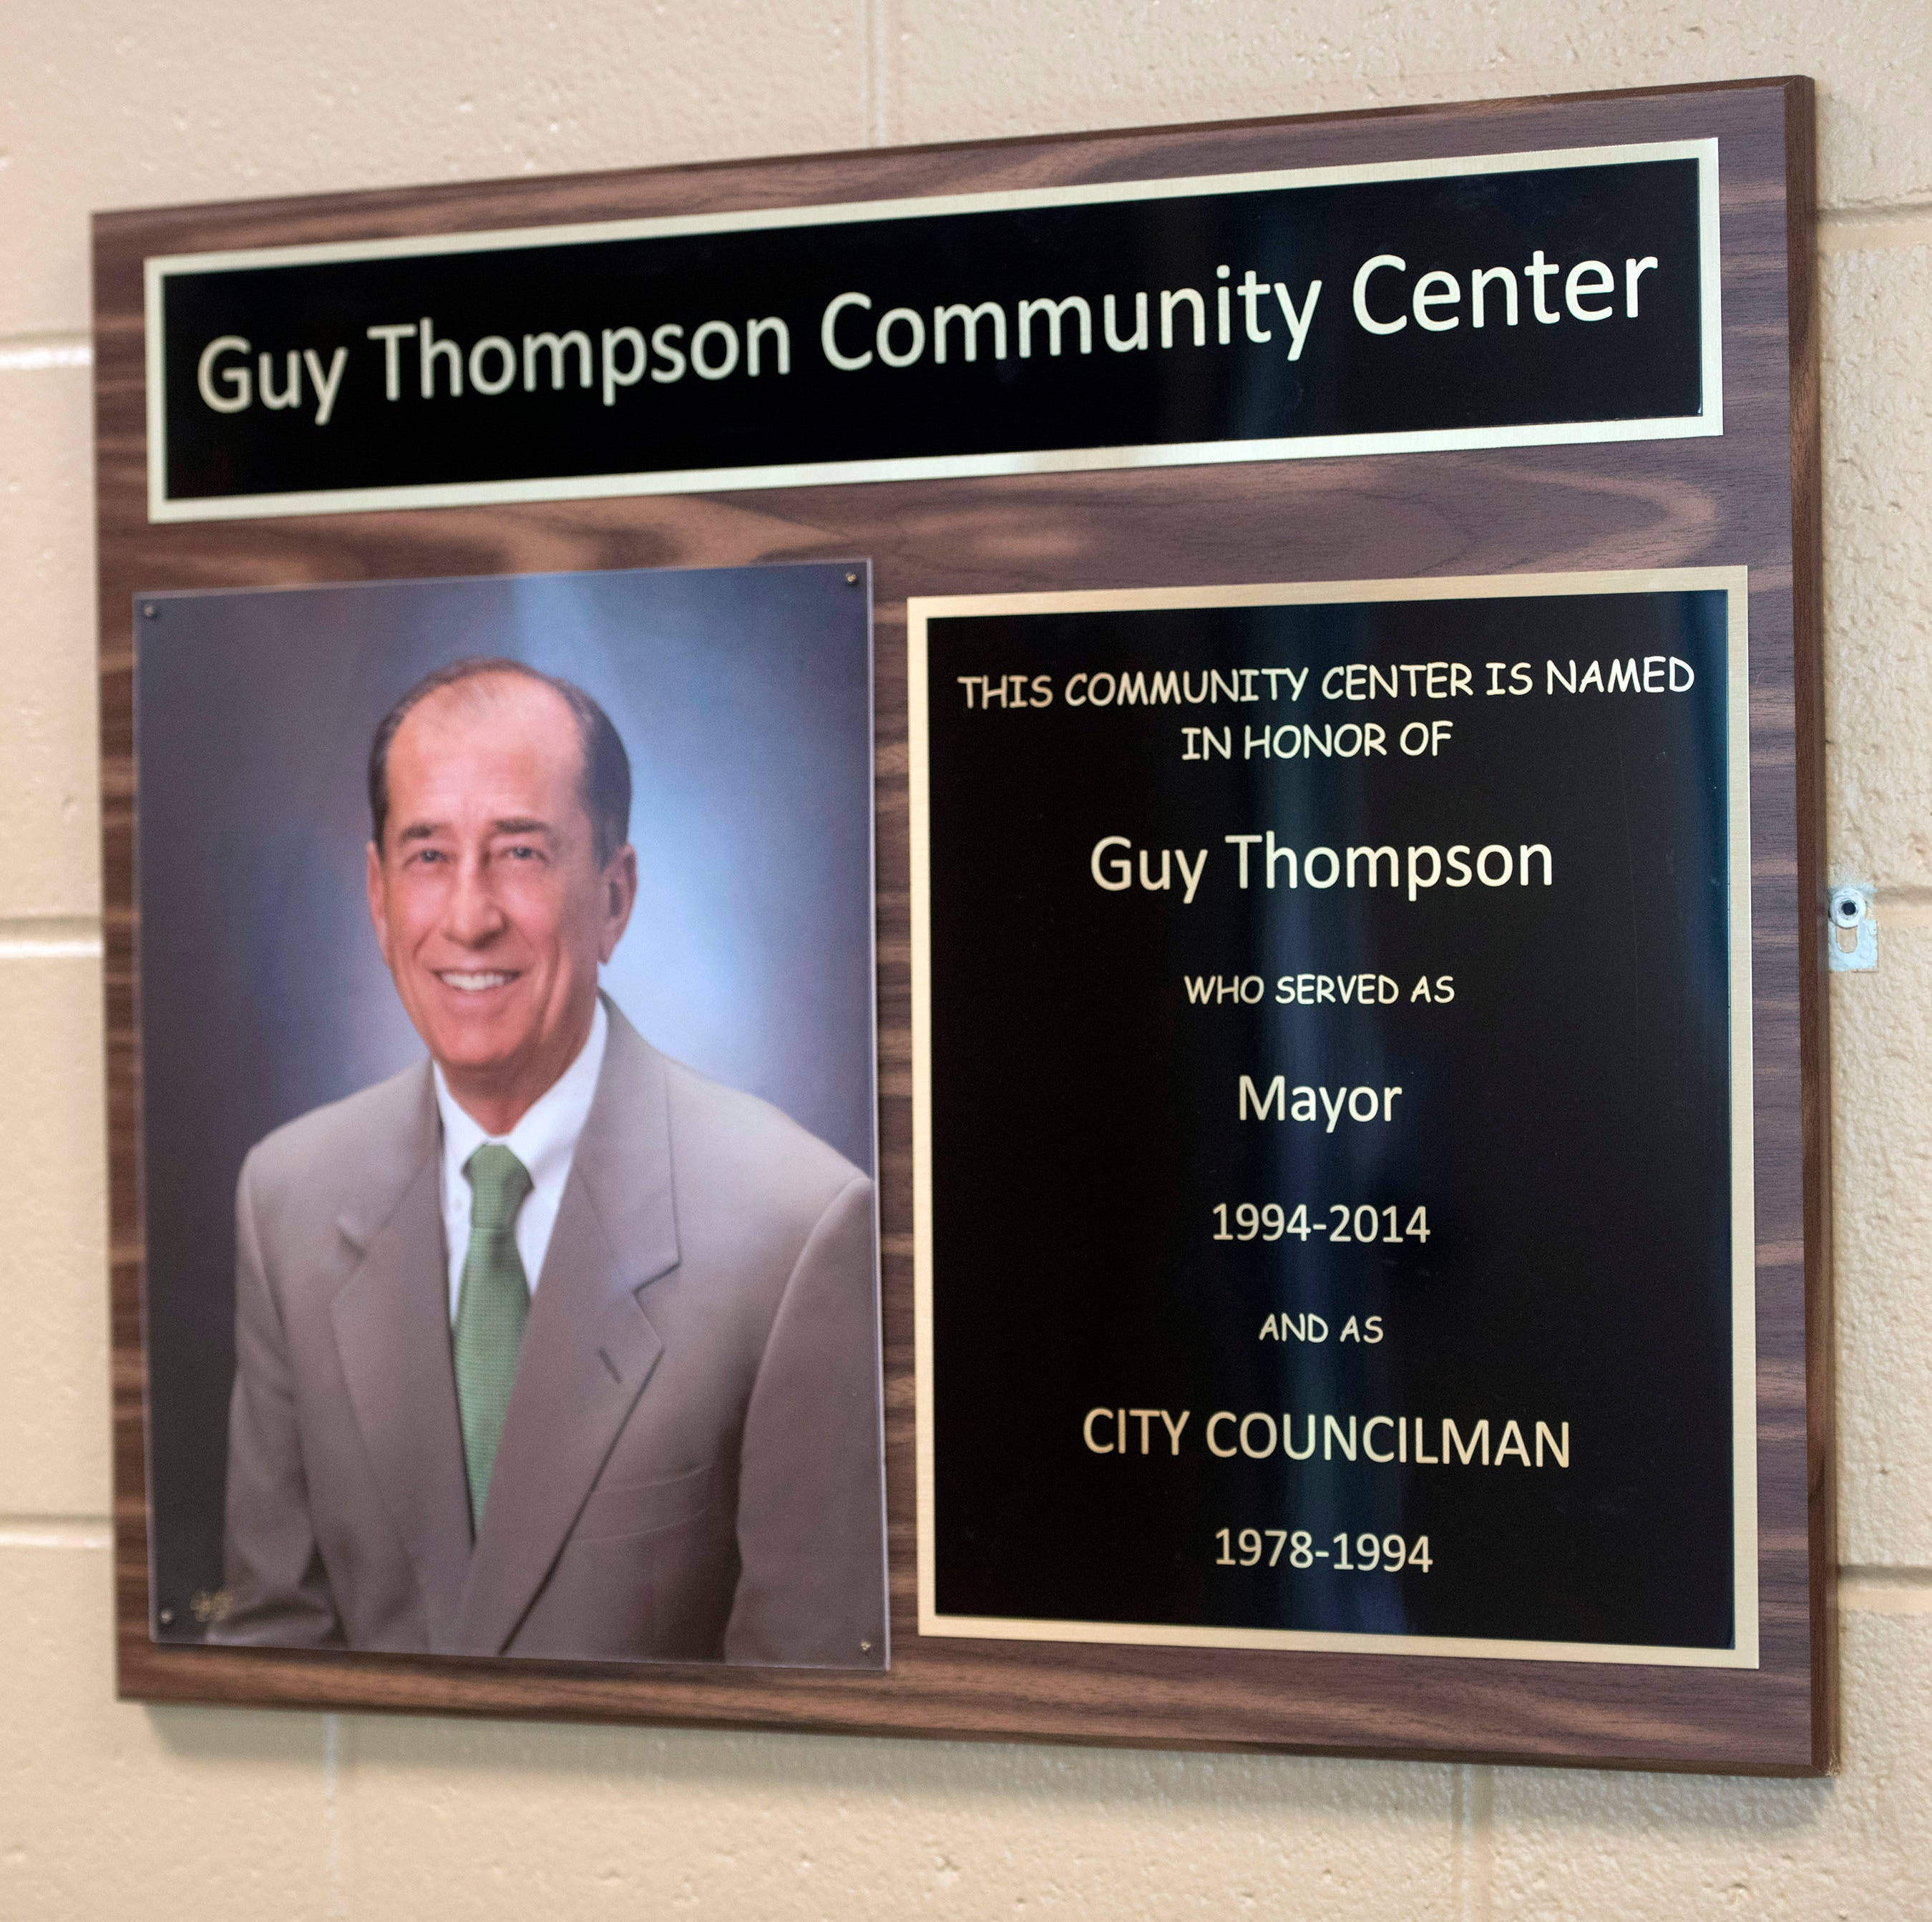 Milton will rename Guy Thompson Community Center, may pursue forensic audit